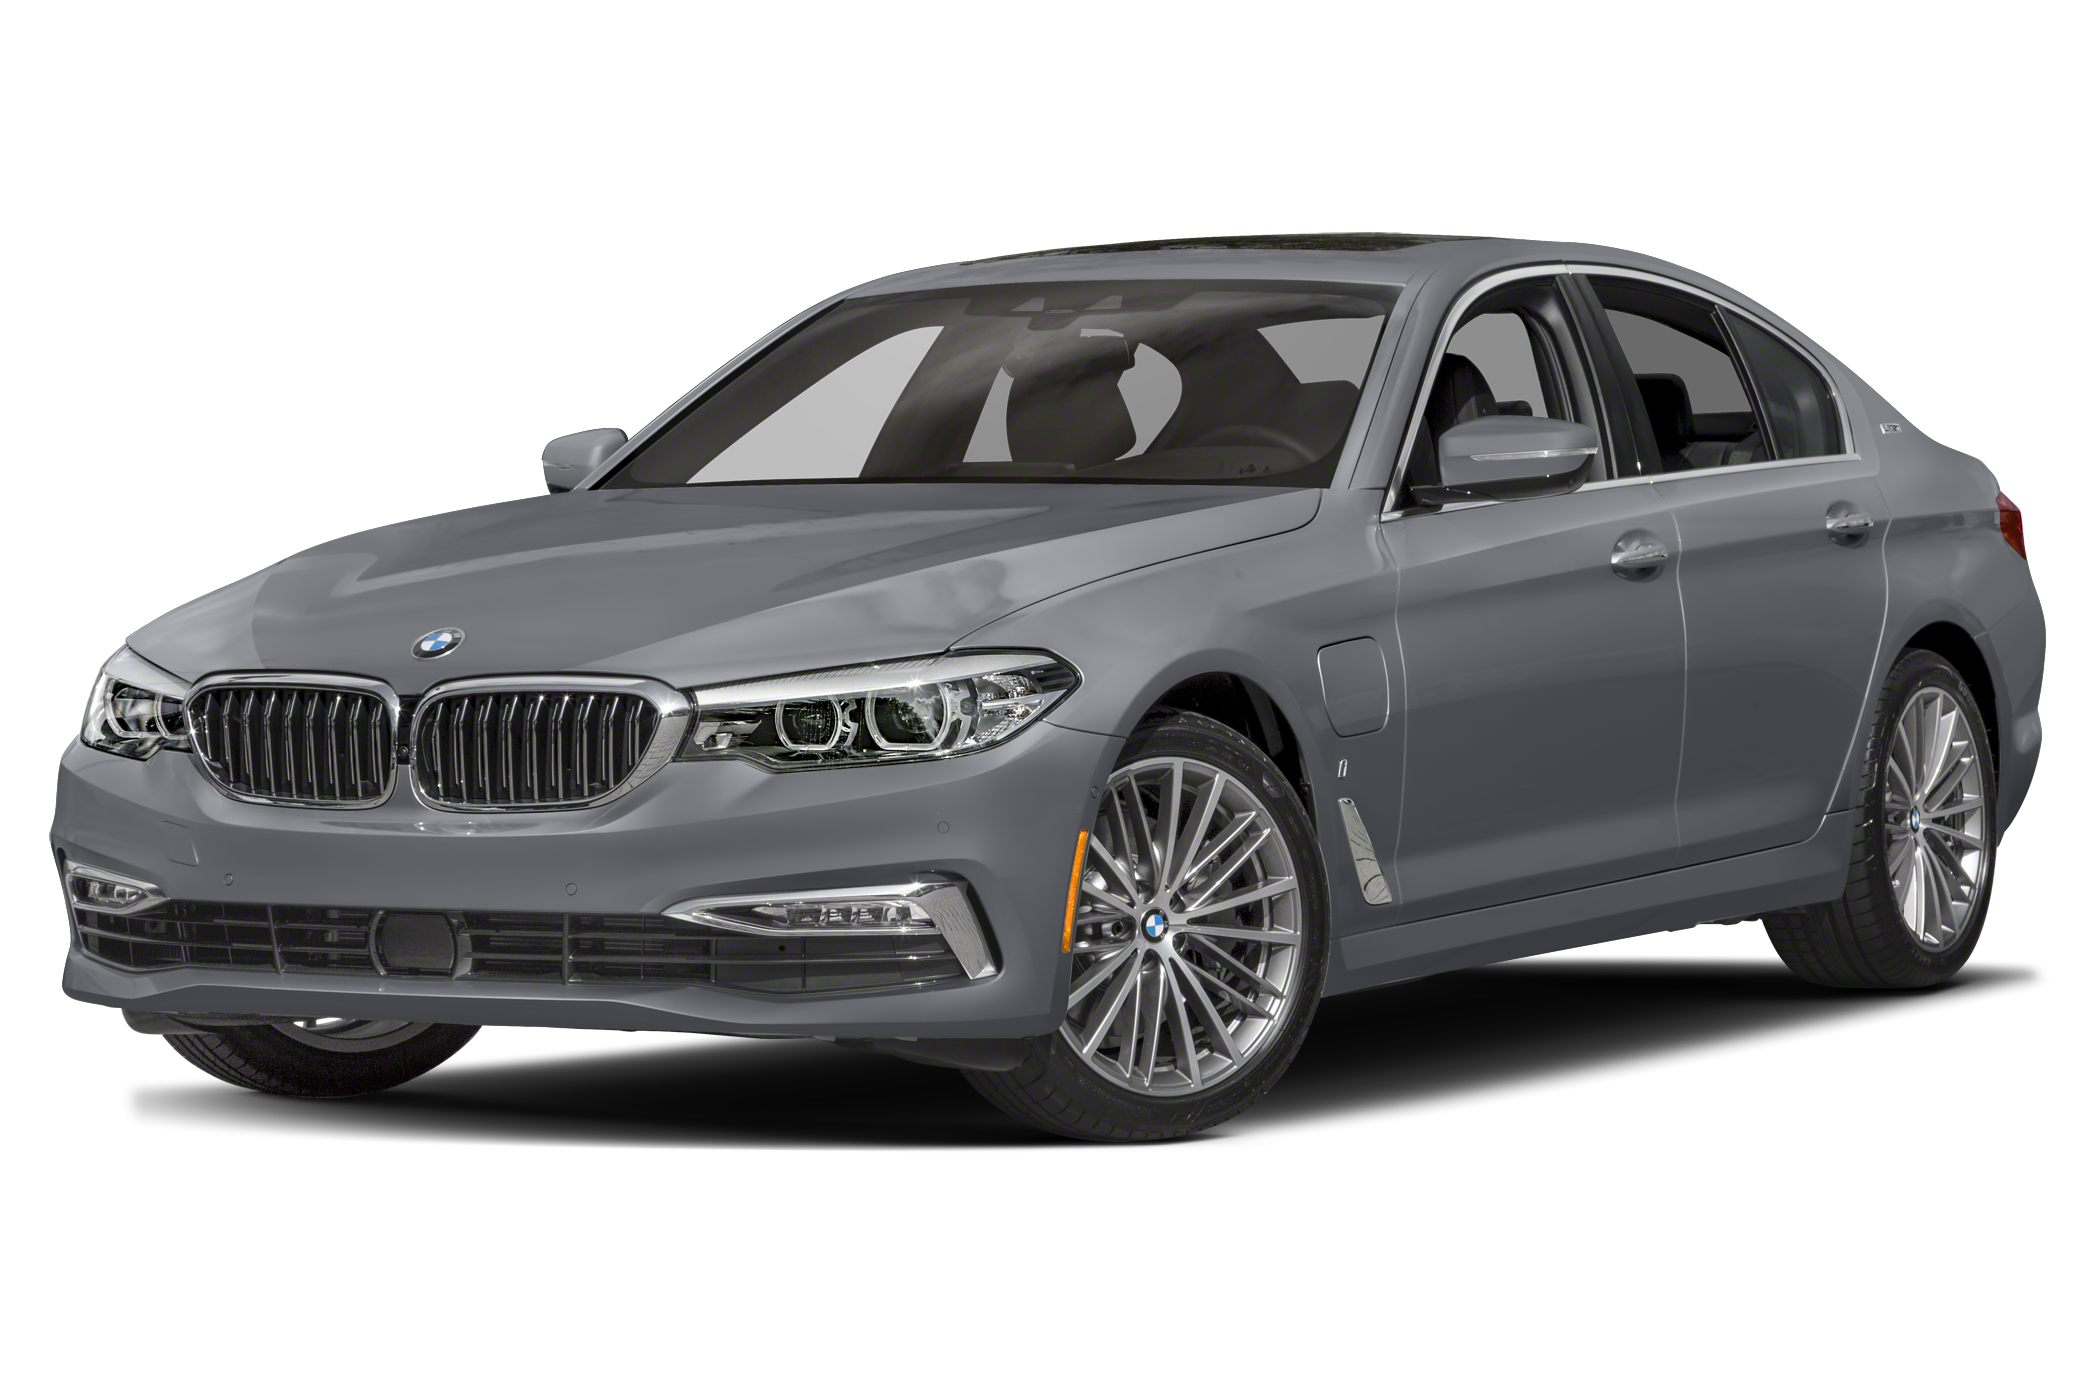 2018 bmw 530e iperformance for sale vin wbaja9c54jb